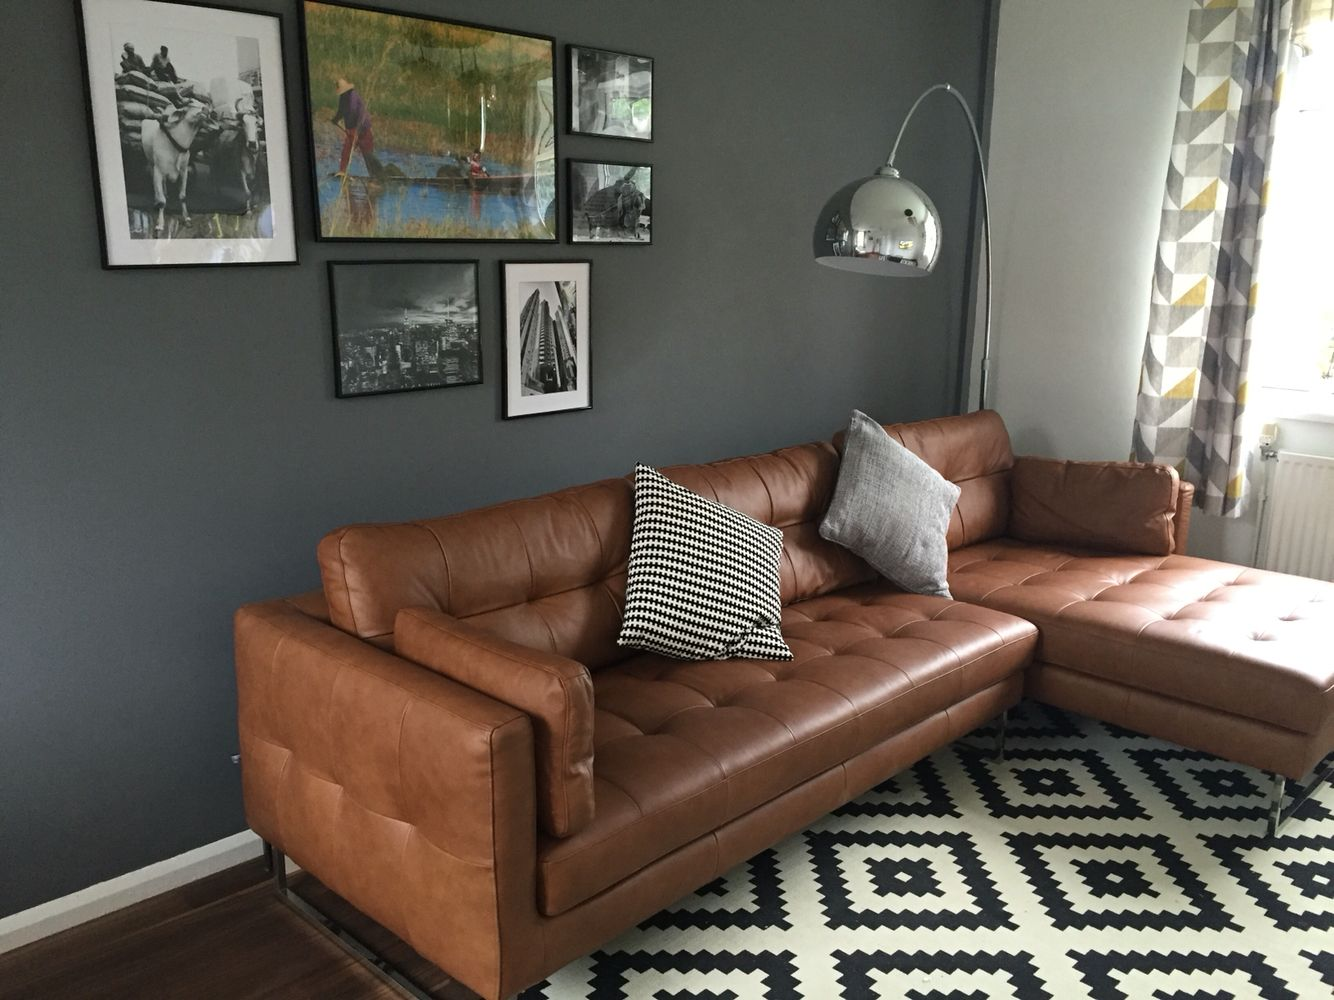 tan couch grey walls